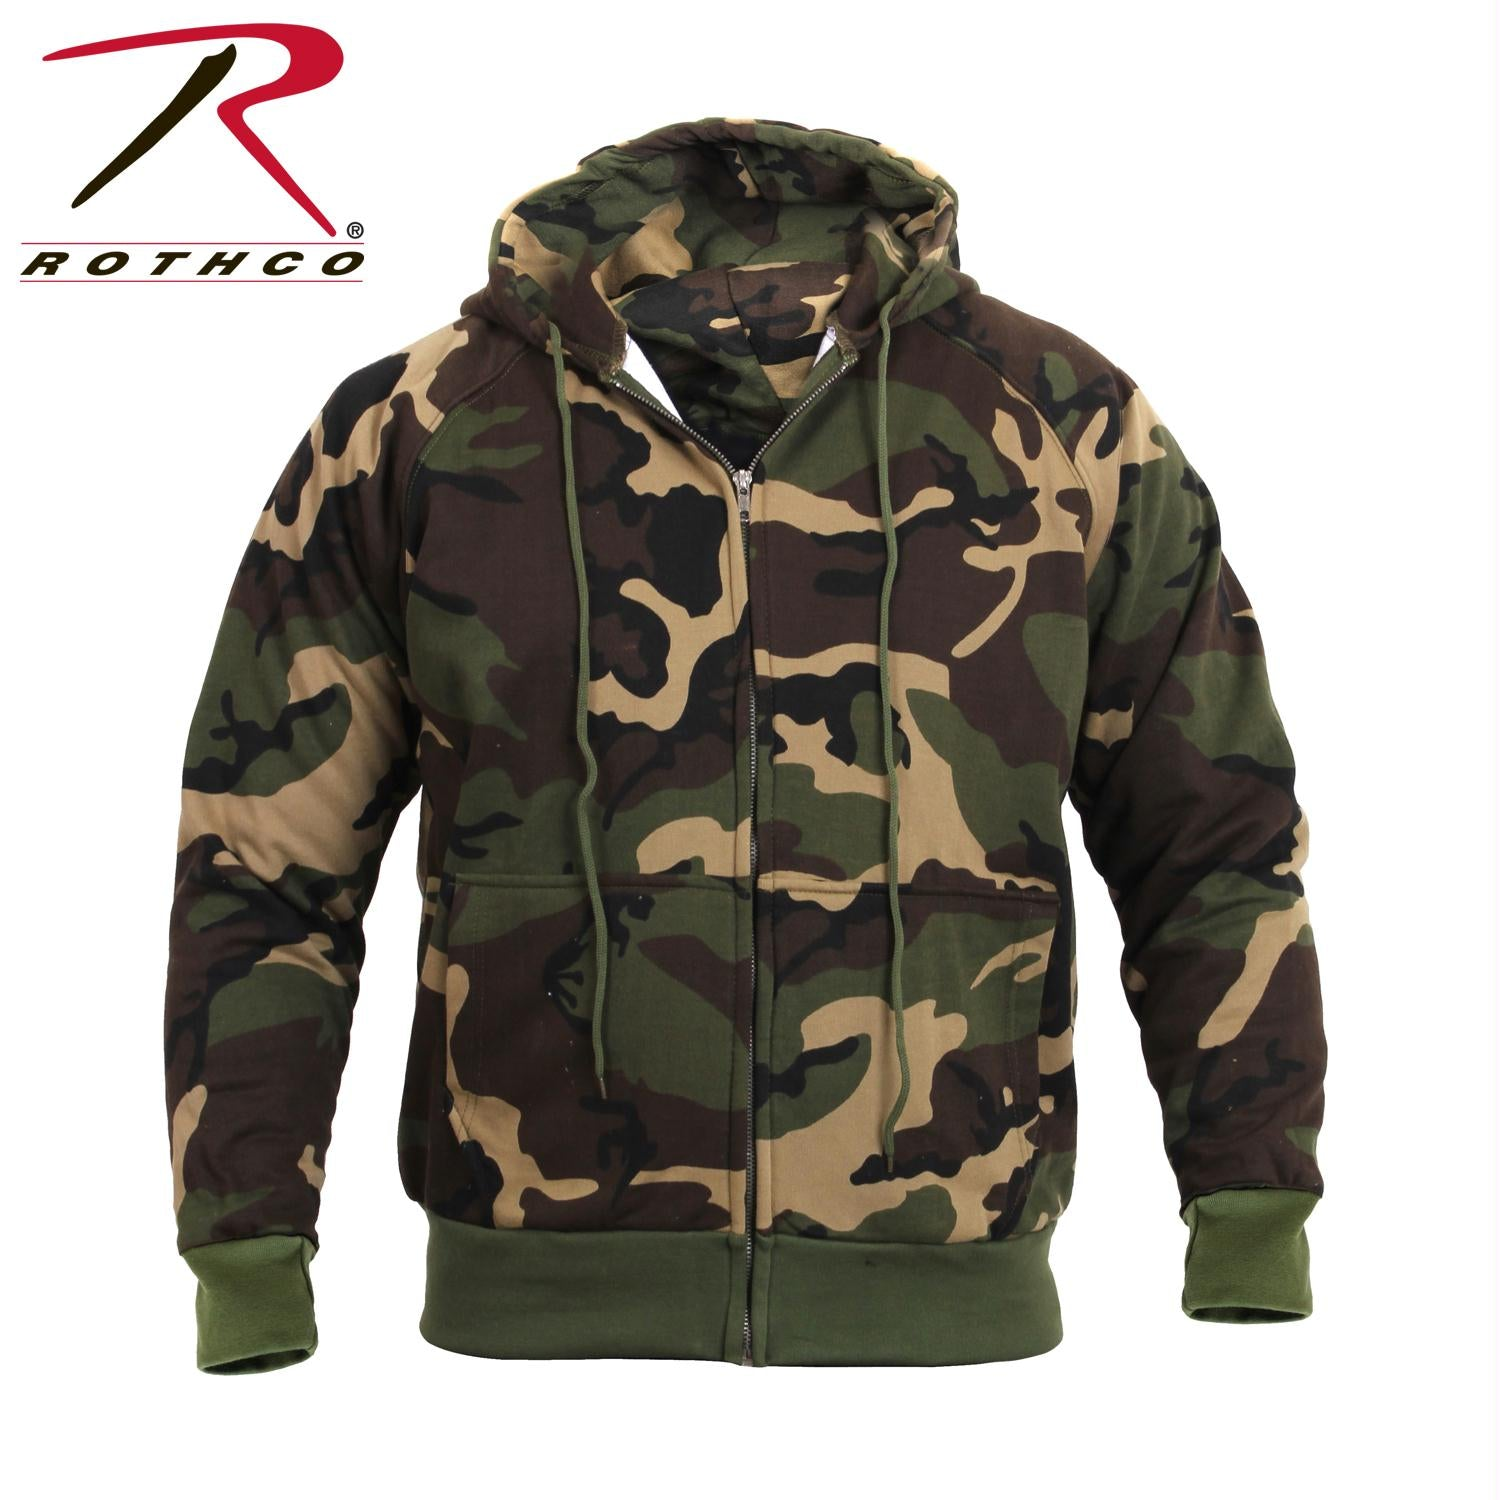 Rothco Thermal Lined Hooded Sweatshirt - Woodland Camo / S